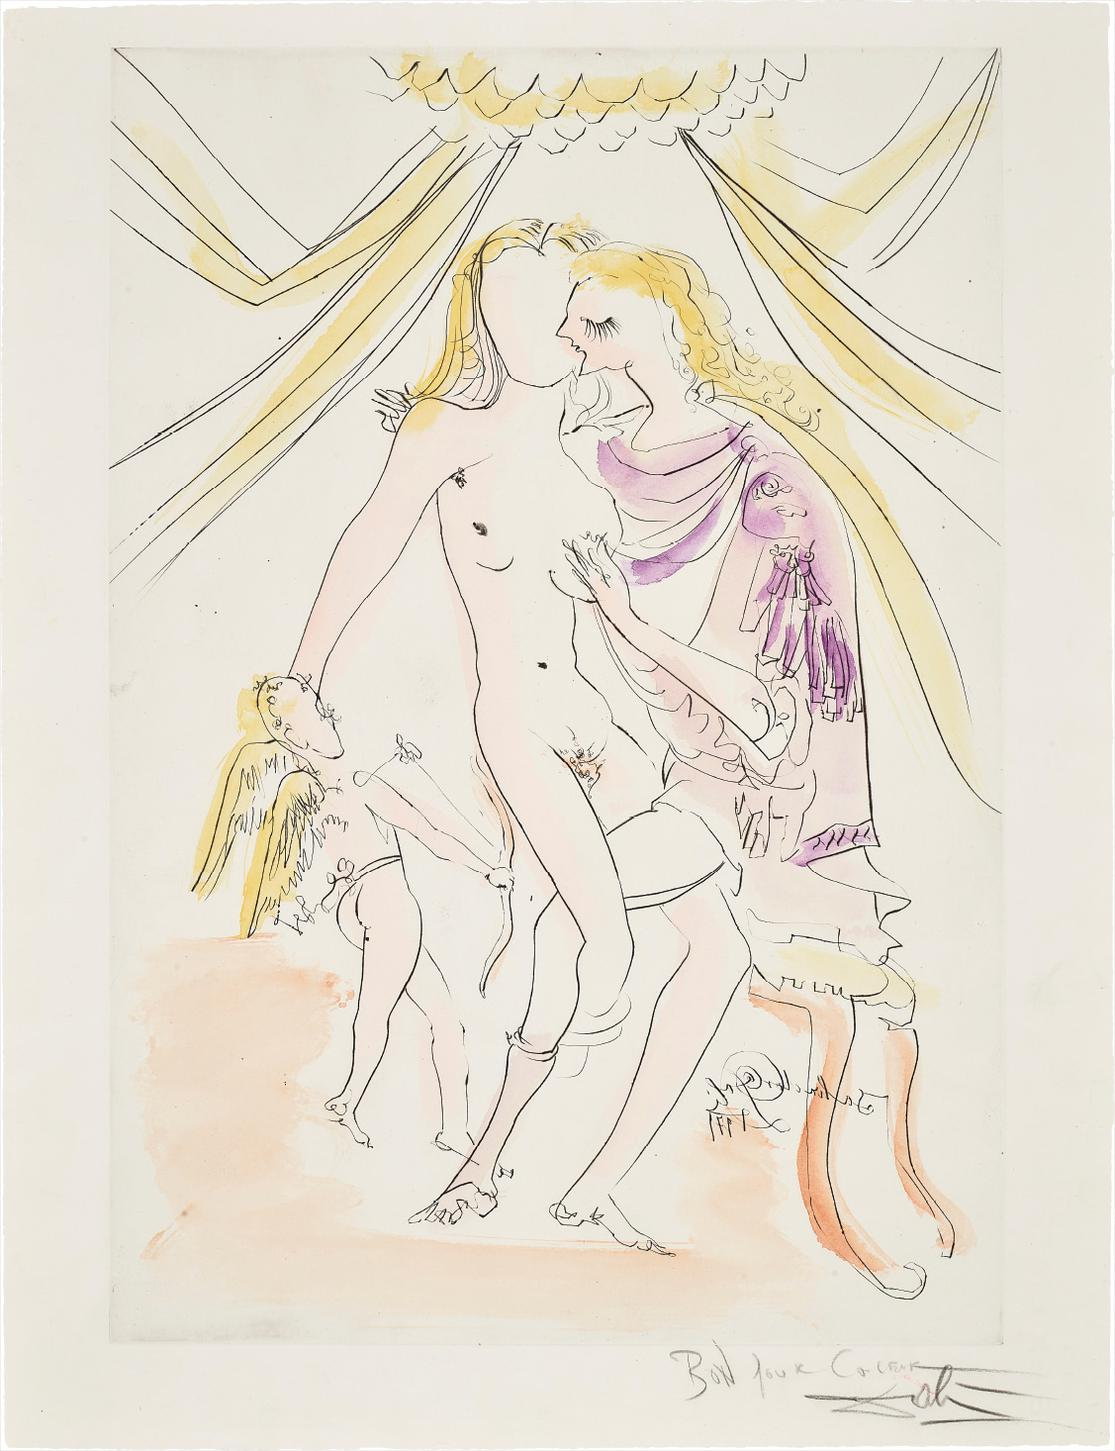 Salvador Dali-Venus, Mars Et Cupidon, From Mythologique Nouvelle (Venus, Mars And Cupid, From New Mythologies)-1971